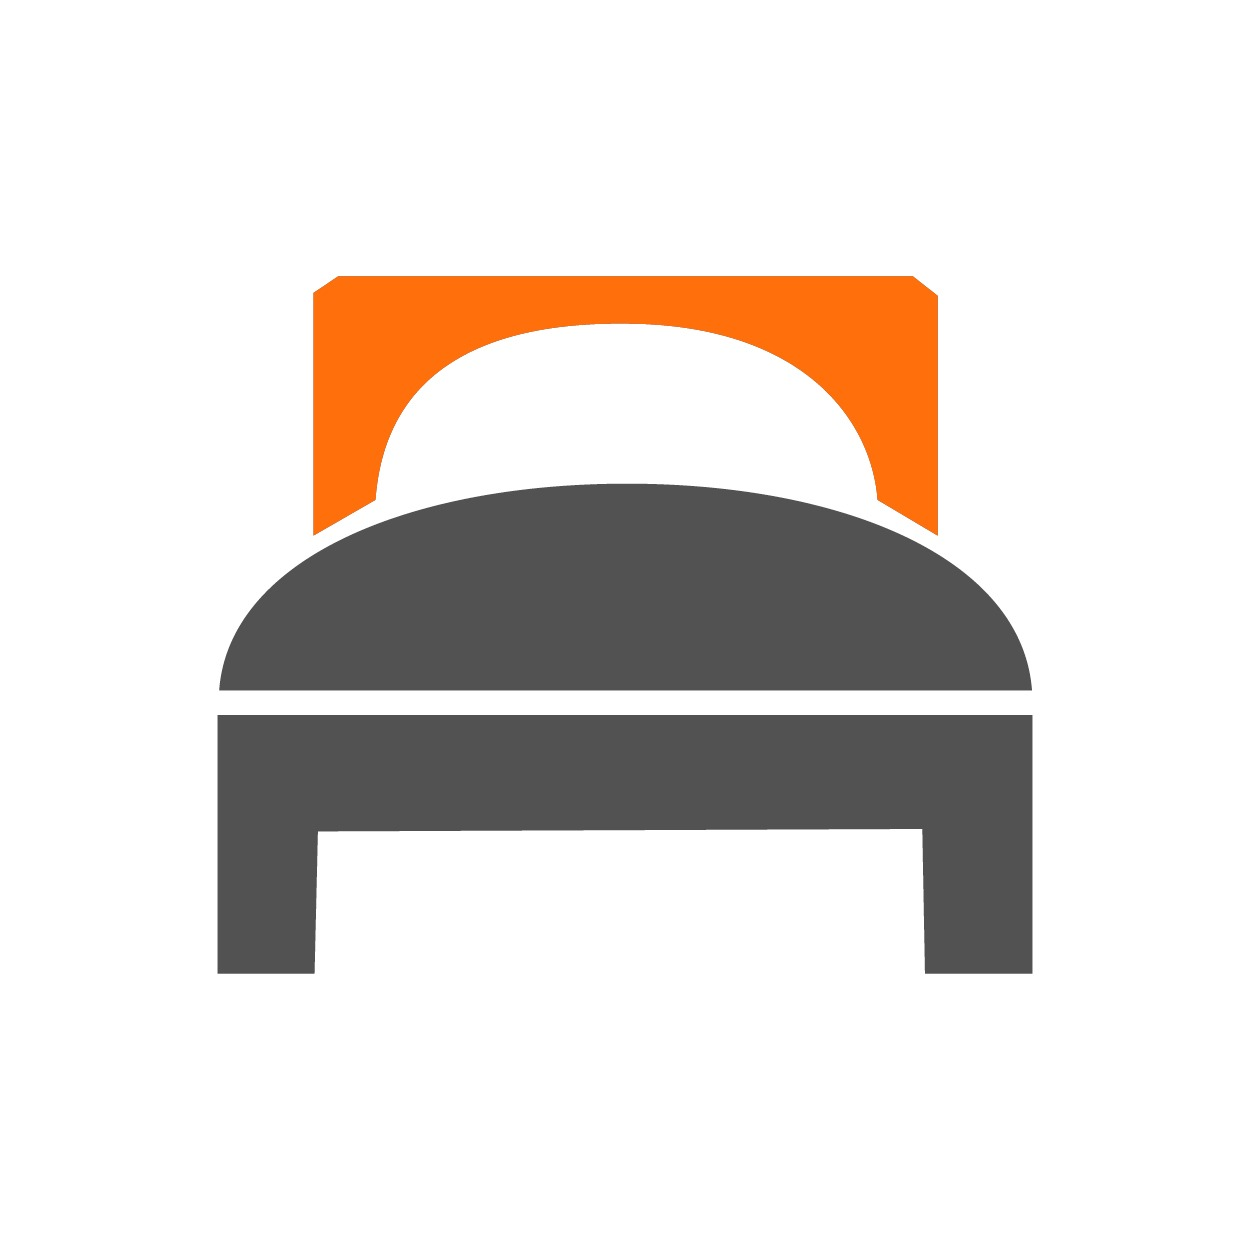 Bed graphic, created by Mister Pixel from the Noun Project